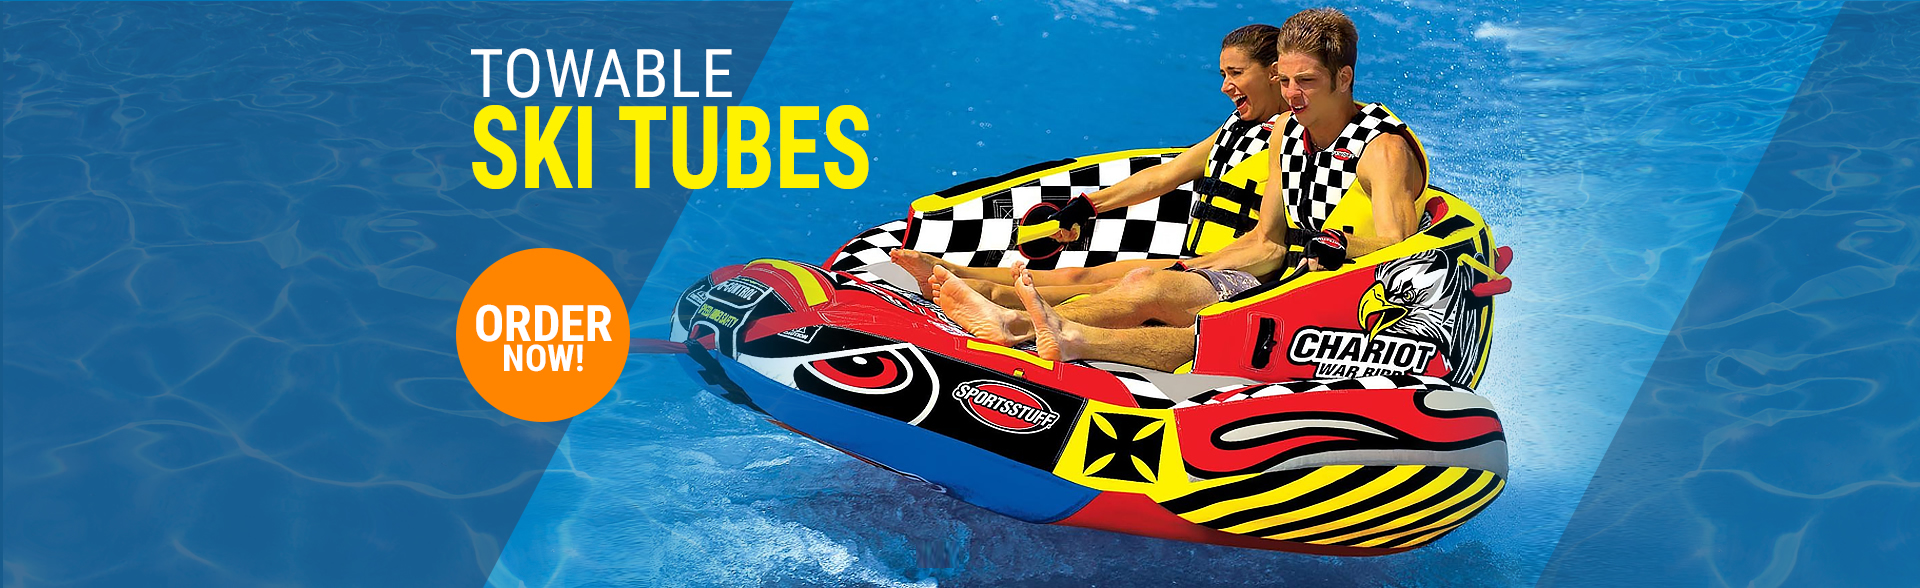 Towable Tubes Boat Water Ski Discounters Tow Harness For Towables 1 2 3